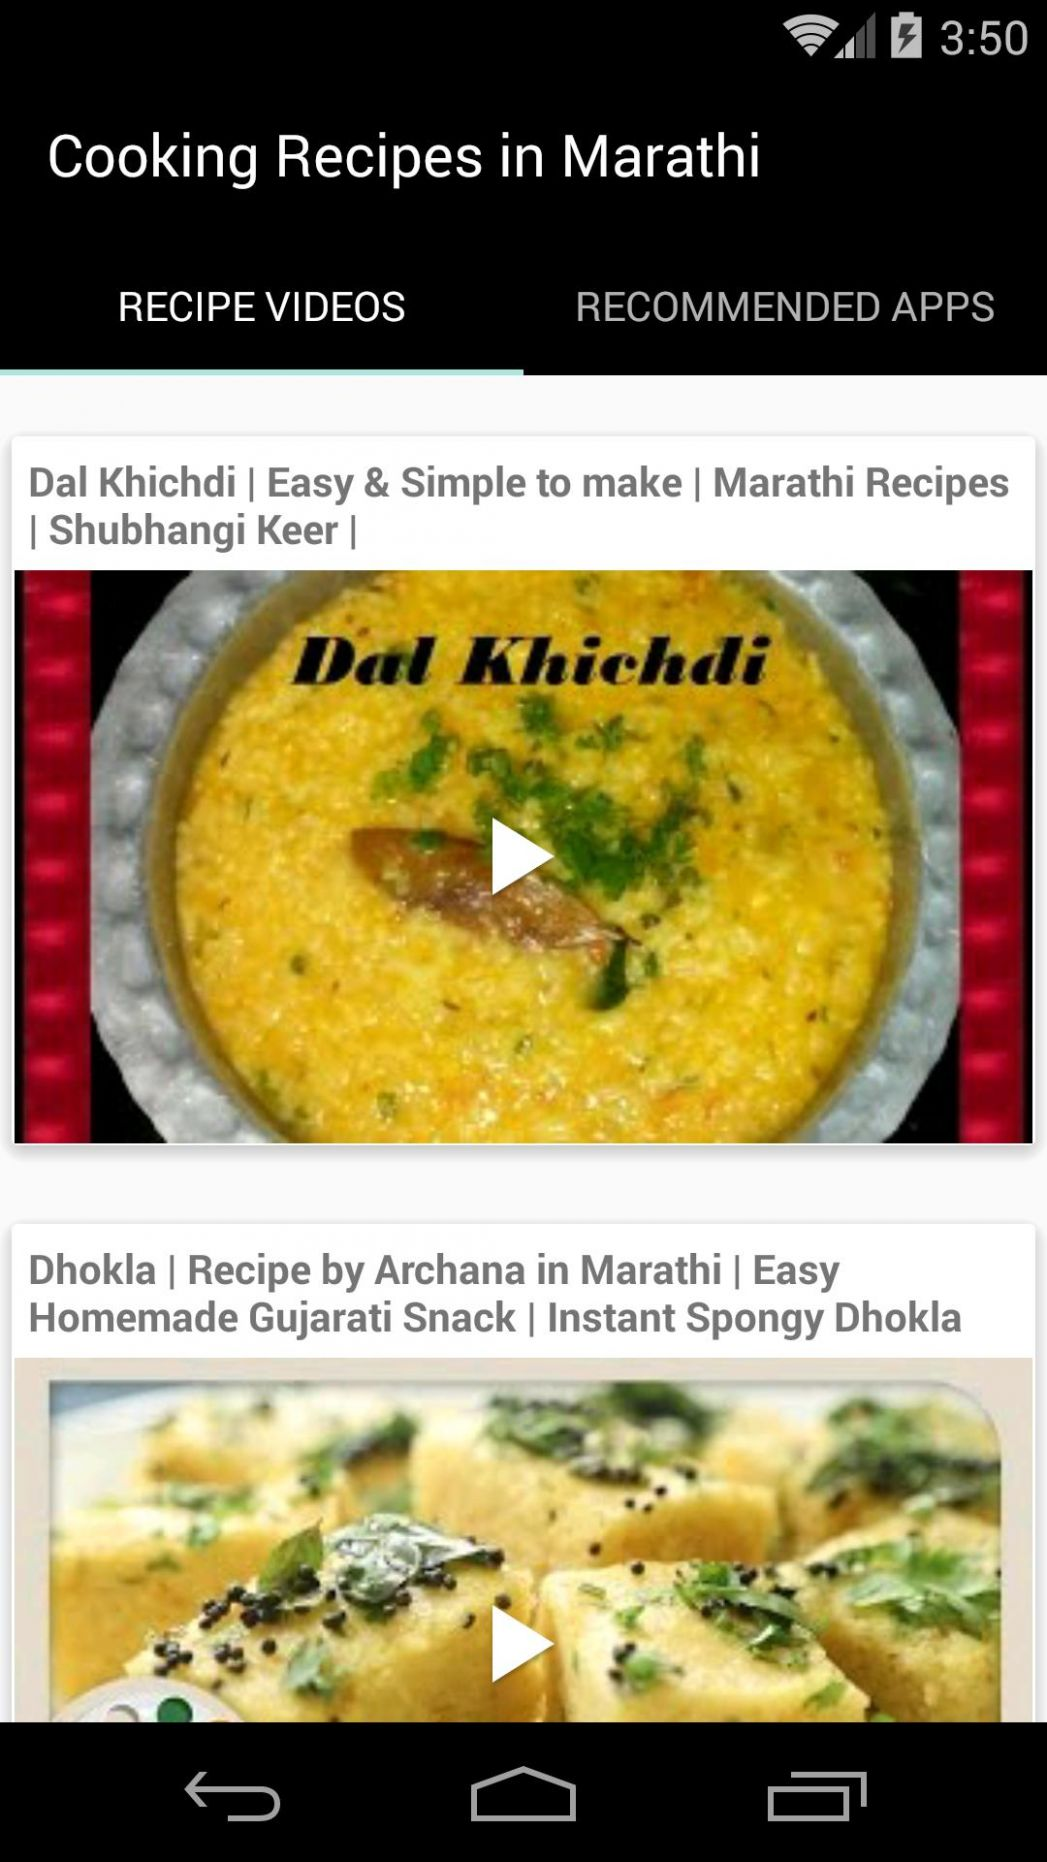 Cooking Recipes in Marathi for Android - APK Download - Easy Recipes In Marathi